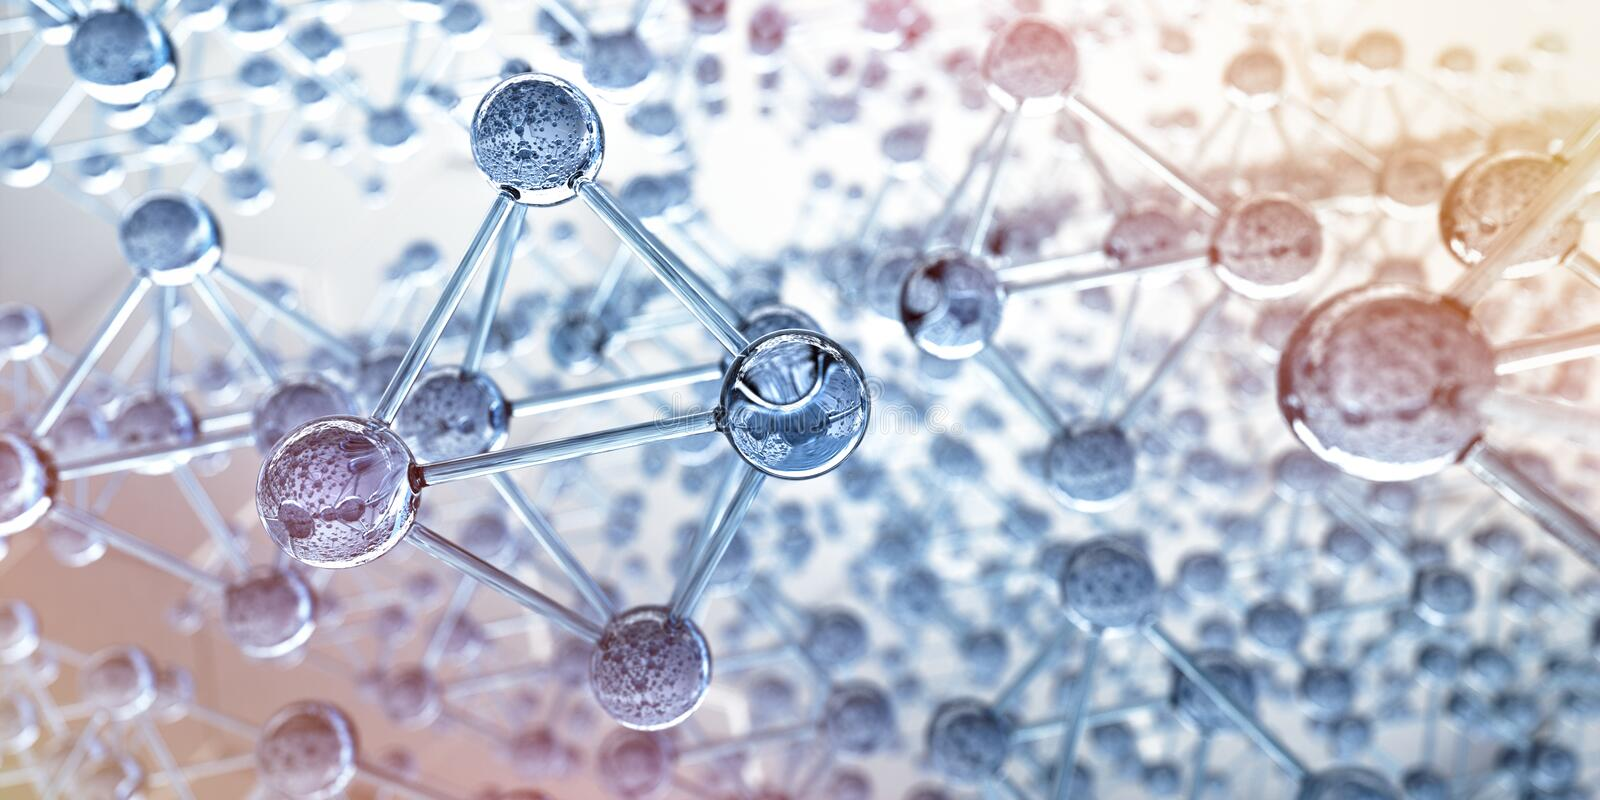 Grid of glass molecules - 3d structure visualization stock illustration